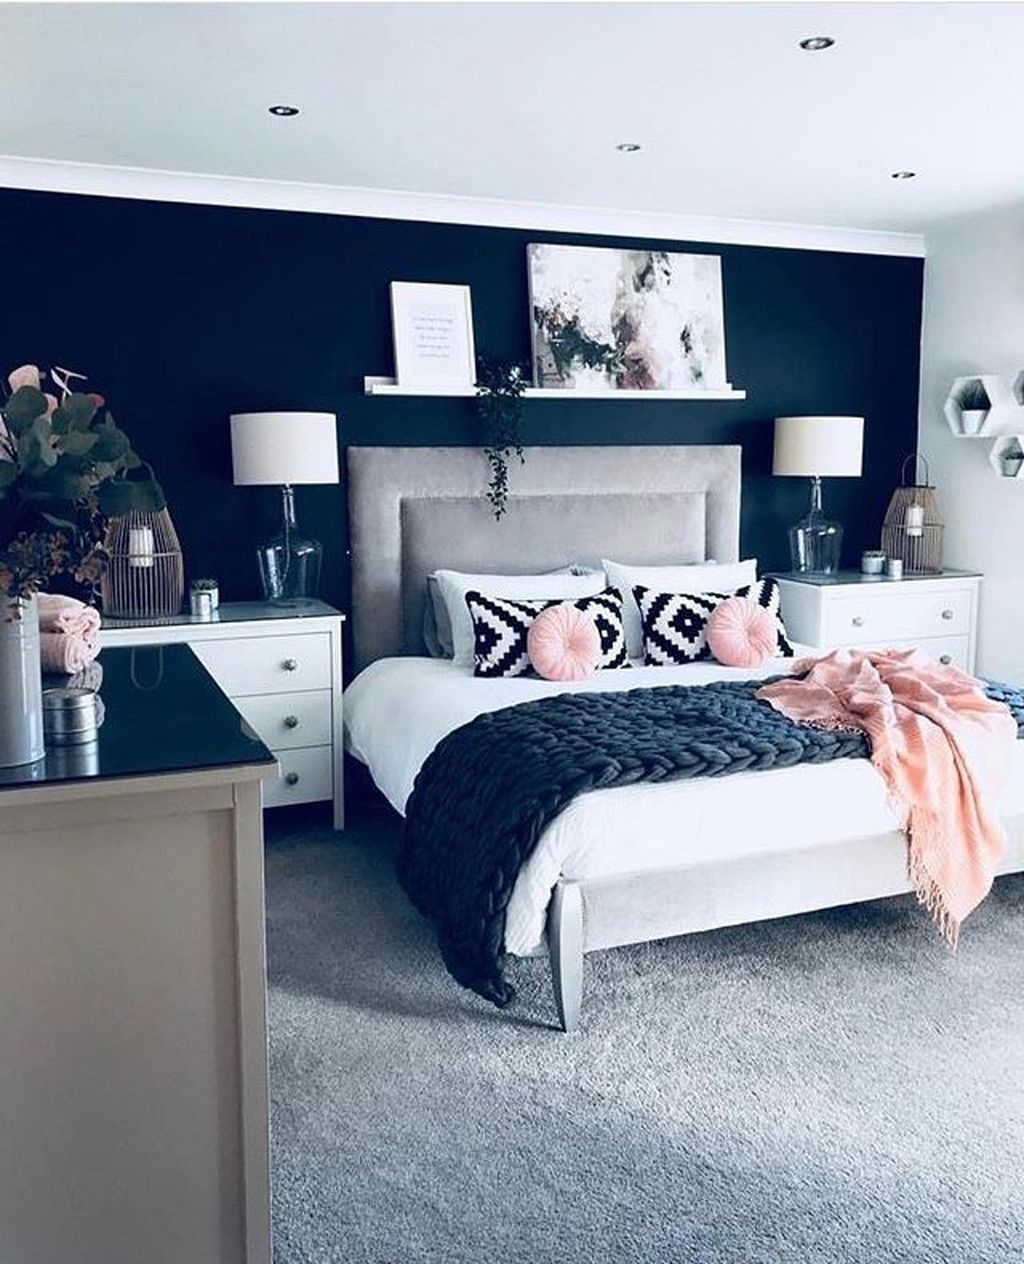 The Best Master Bedroom Design Ideas To Refresh 01 - HOMYHOMEE on Best Master Bedroom Designs  id=68833